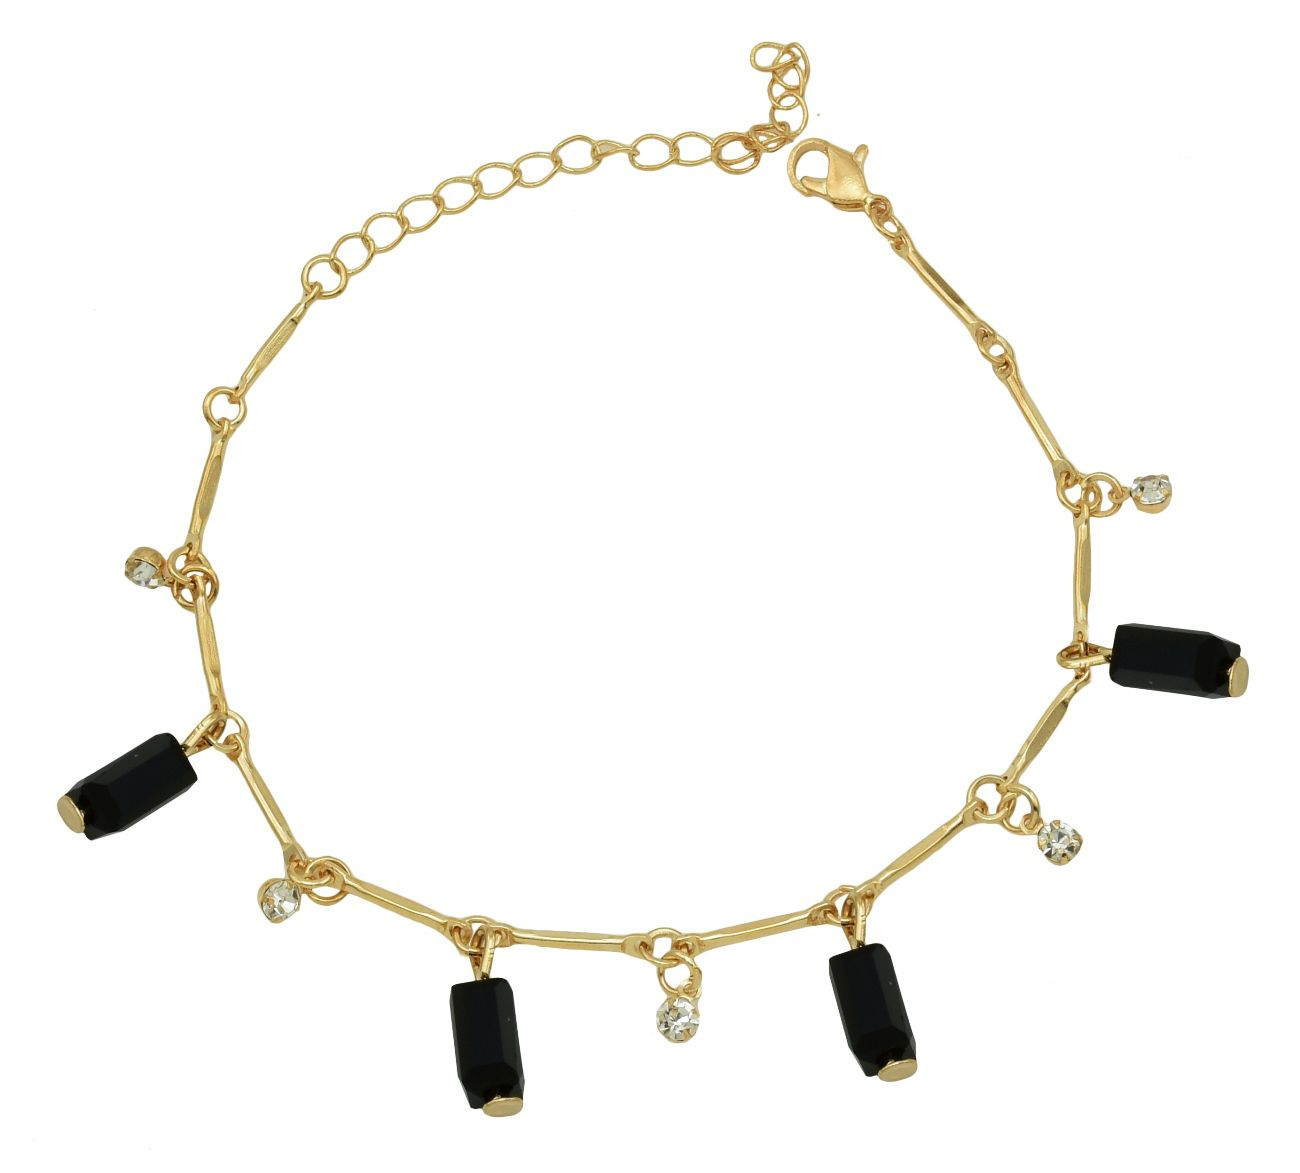 High Trendz Trendy Light Weight Gold Plated Anklet With Hanging Black Crystal For Women And Girls